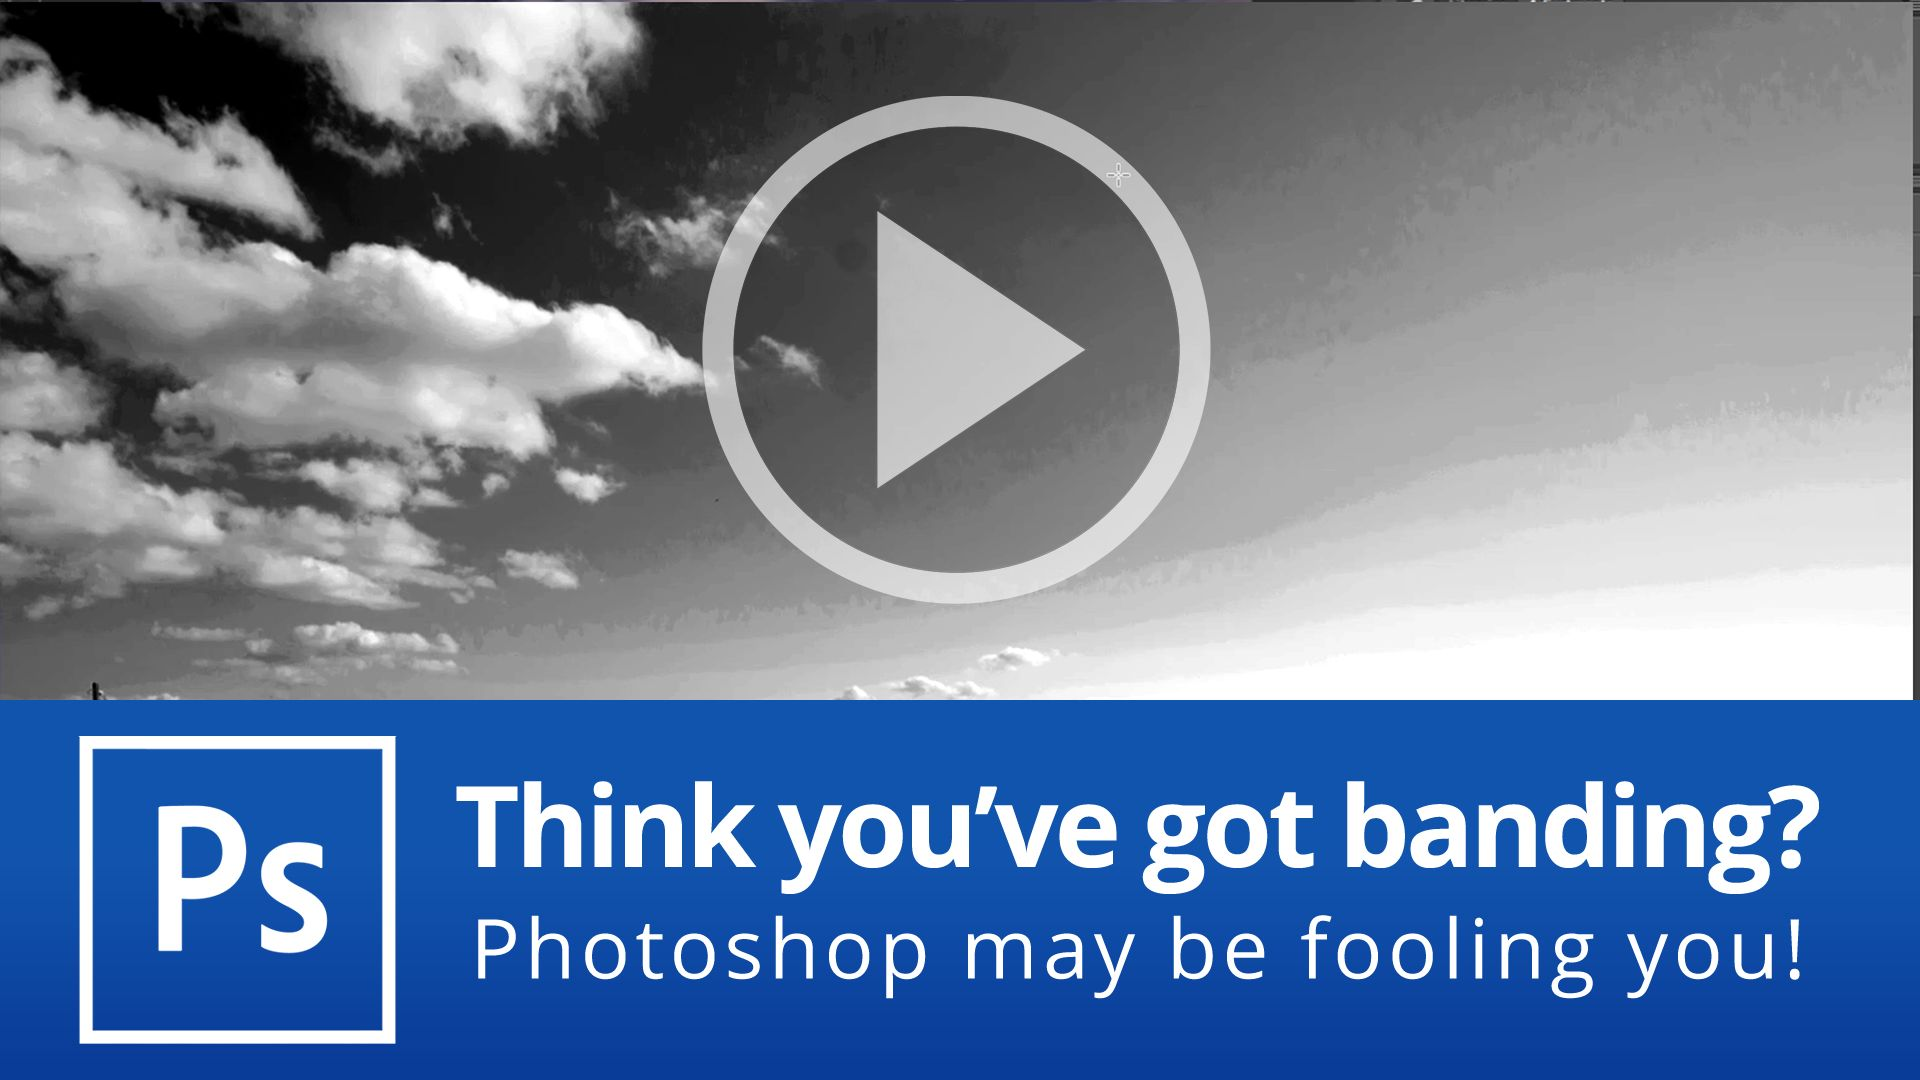 Think you've got banding? Photoshop may be fooling you!